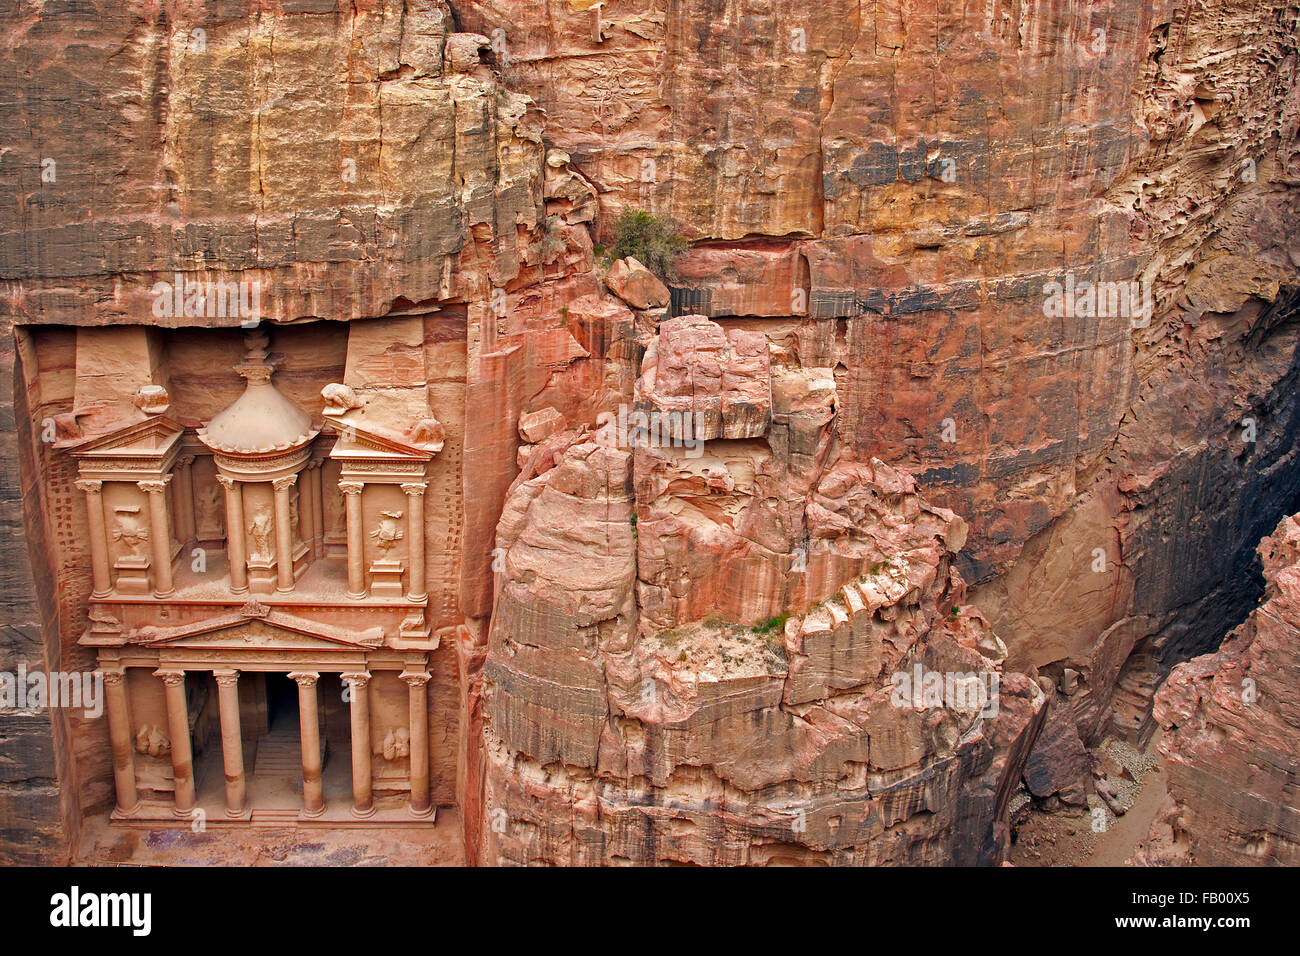 Al Khazneh / The Treasury, carved out of a sandstone rock face in the ancient city of Petra in southern Jordan Stock Photo